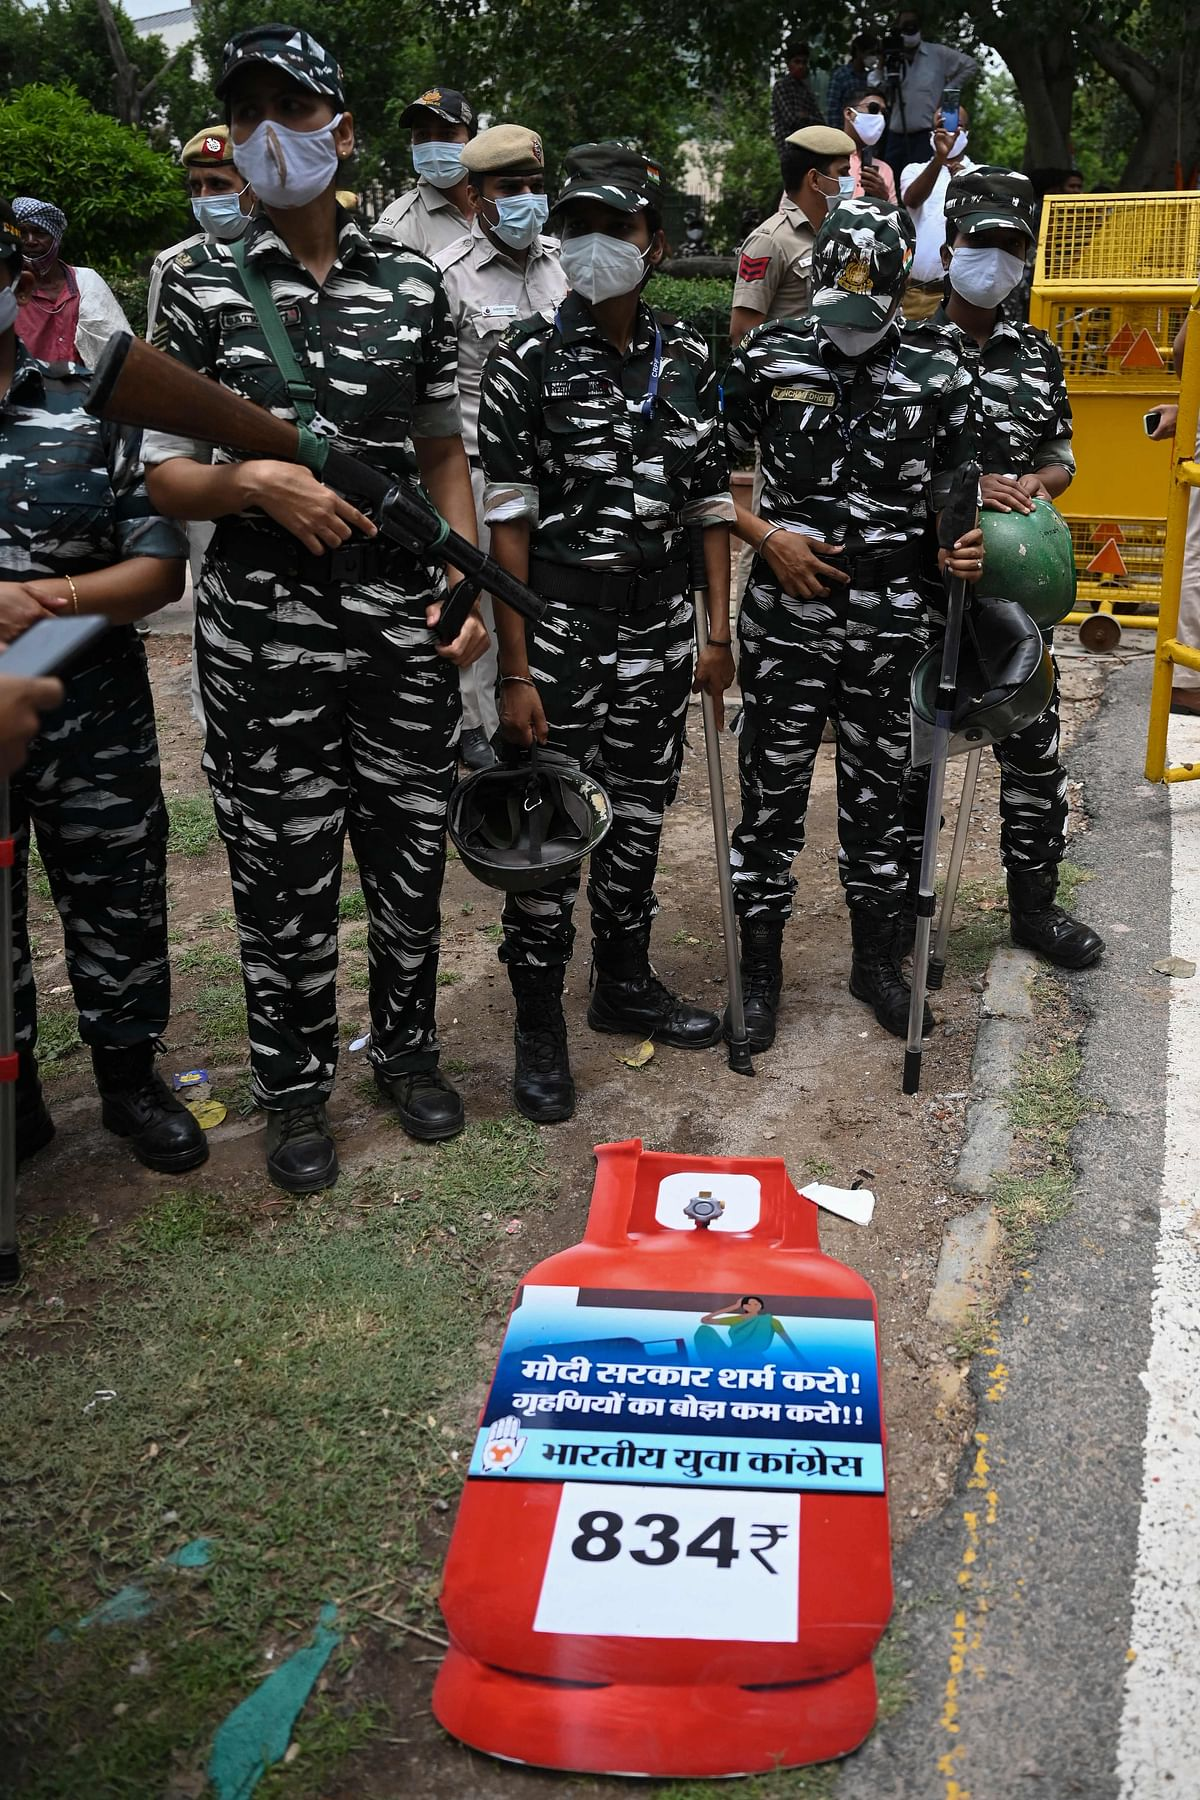 Security personnel stand guard as activists of the Indian Youth Congress (IYC) party (not seen) shout slogans during a protest against the recent price hike of fuel and Liquefied Petroleum Gas (LPG) cylinder, outside the ministry of petroleum and natural gas in New Delhi on July 3, 2021.